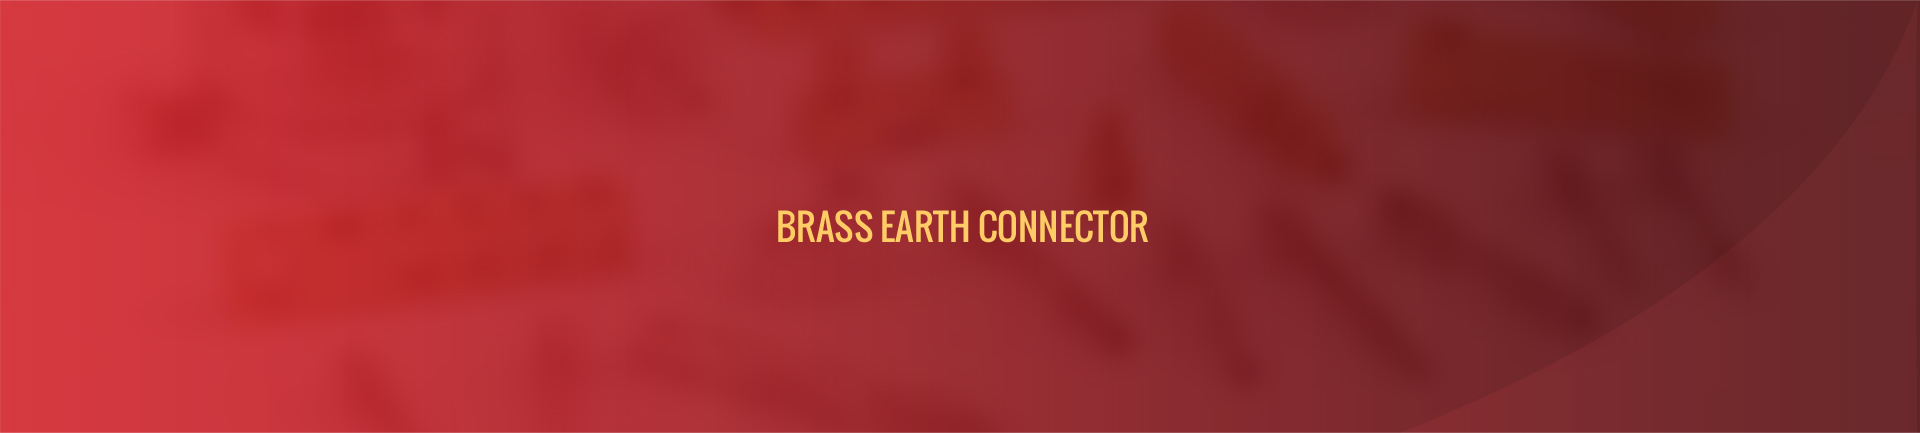 brass-earth-connector-banner